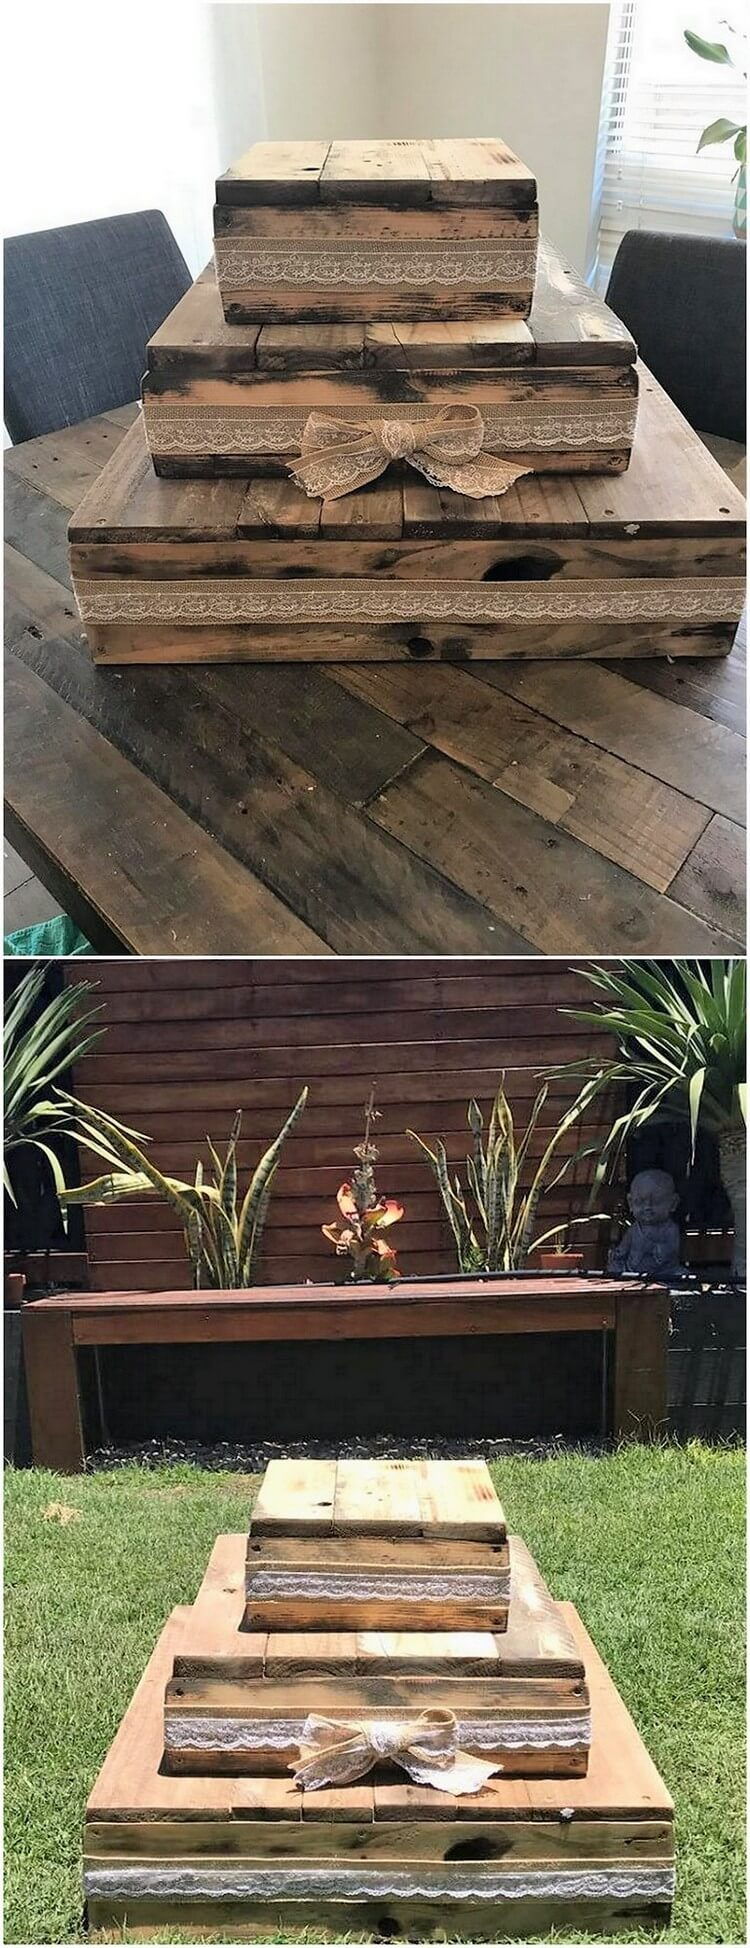 Wood Pallet Garden Creation